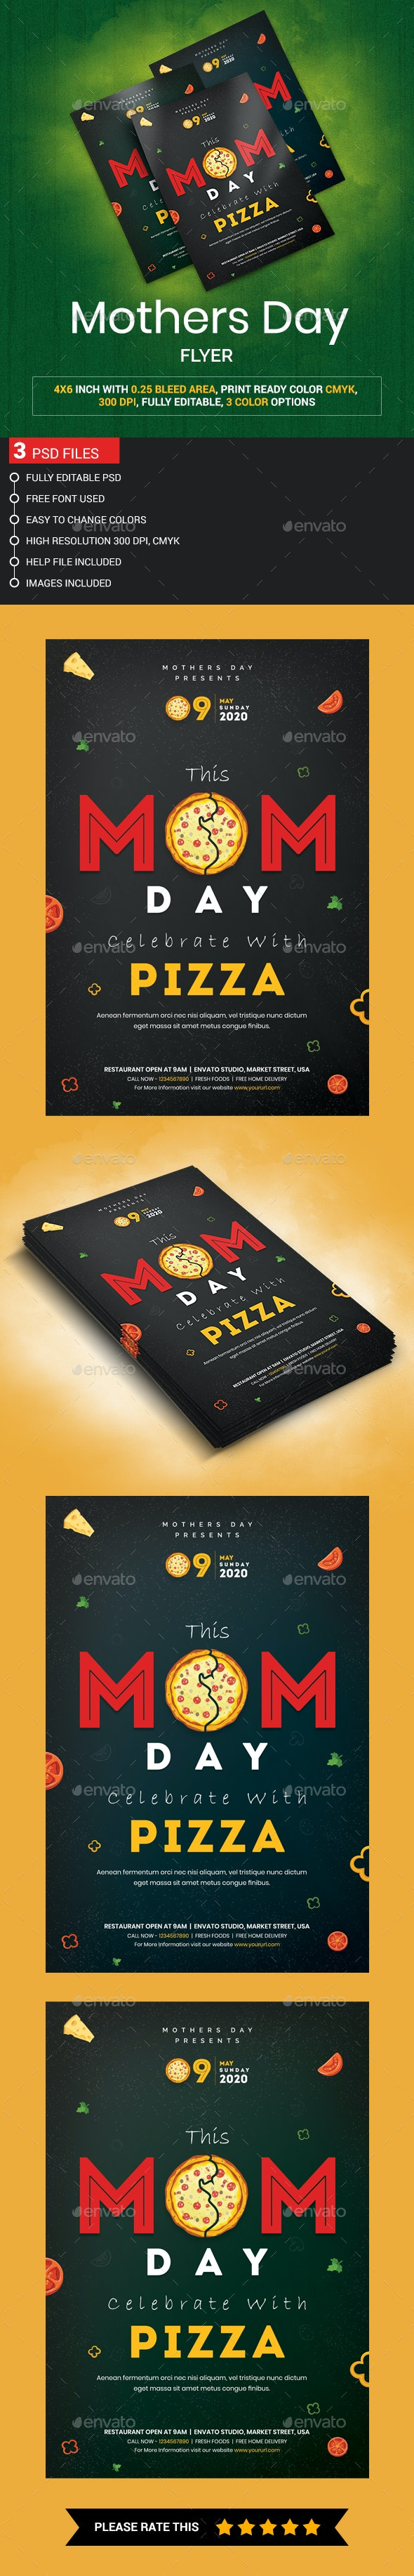 Mothers Day Flyer - Restaurant Flyers